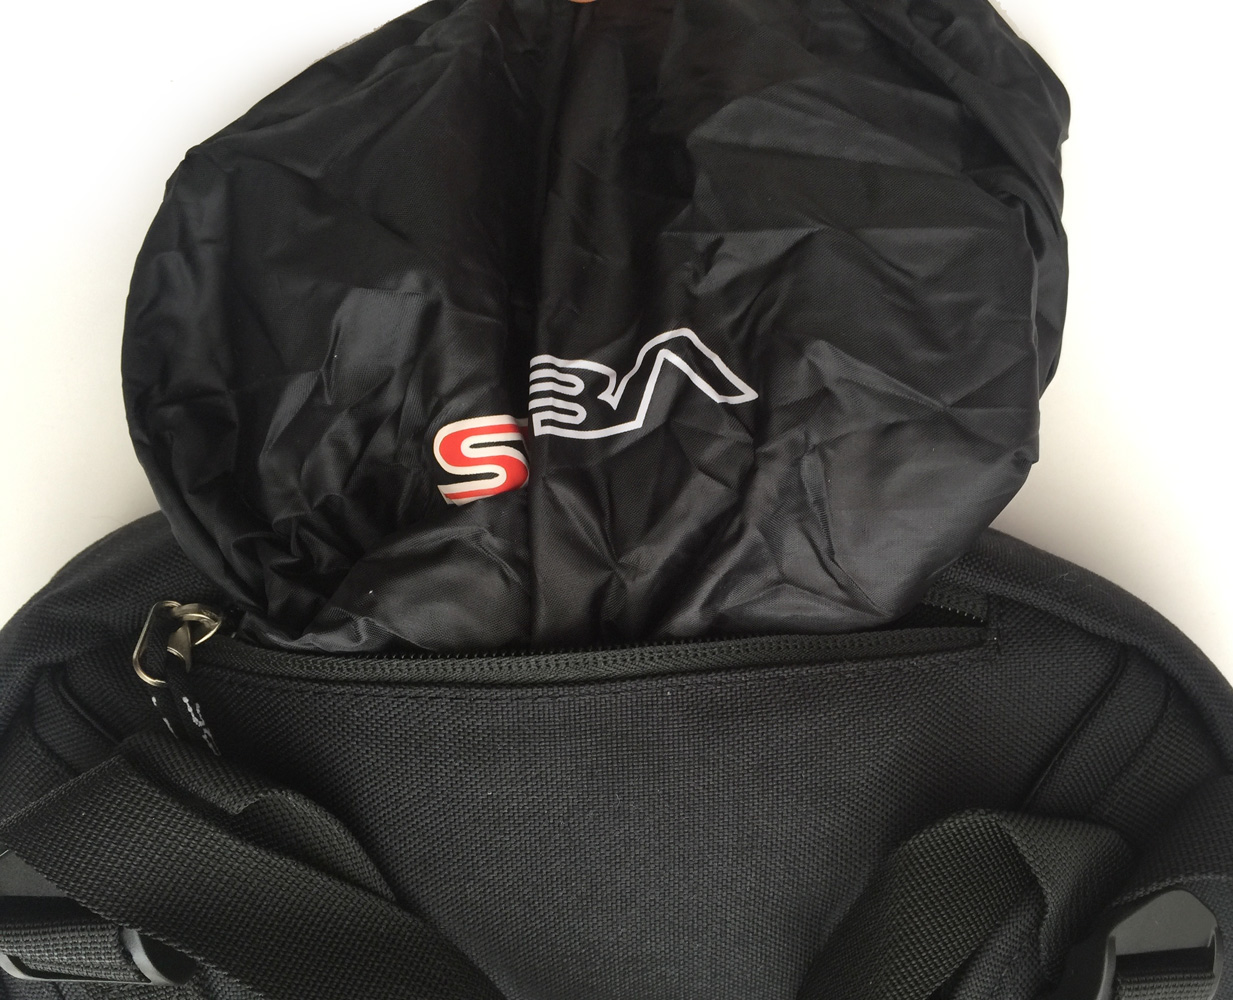 big seba skate bag how to open the rain cover